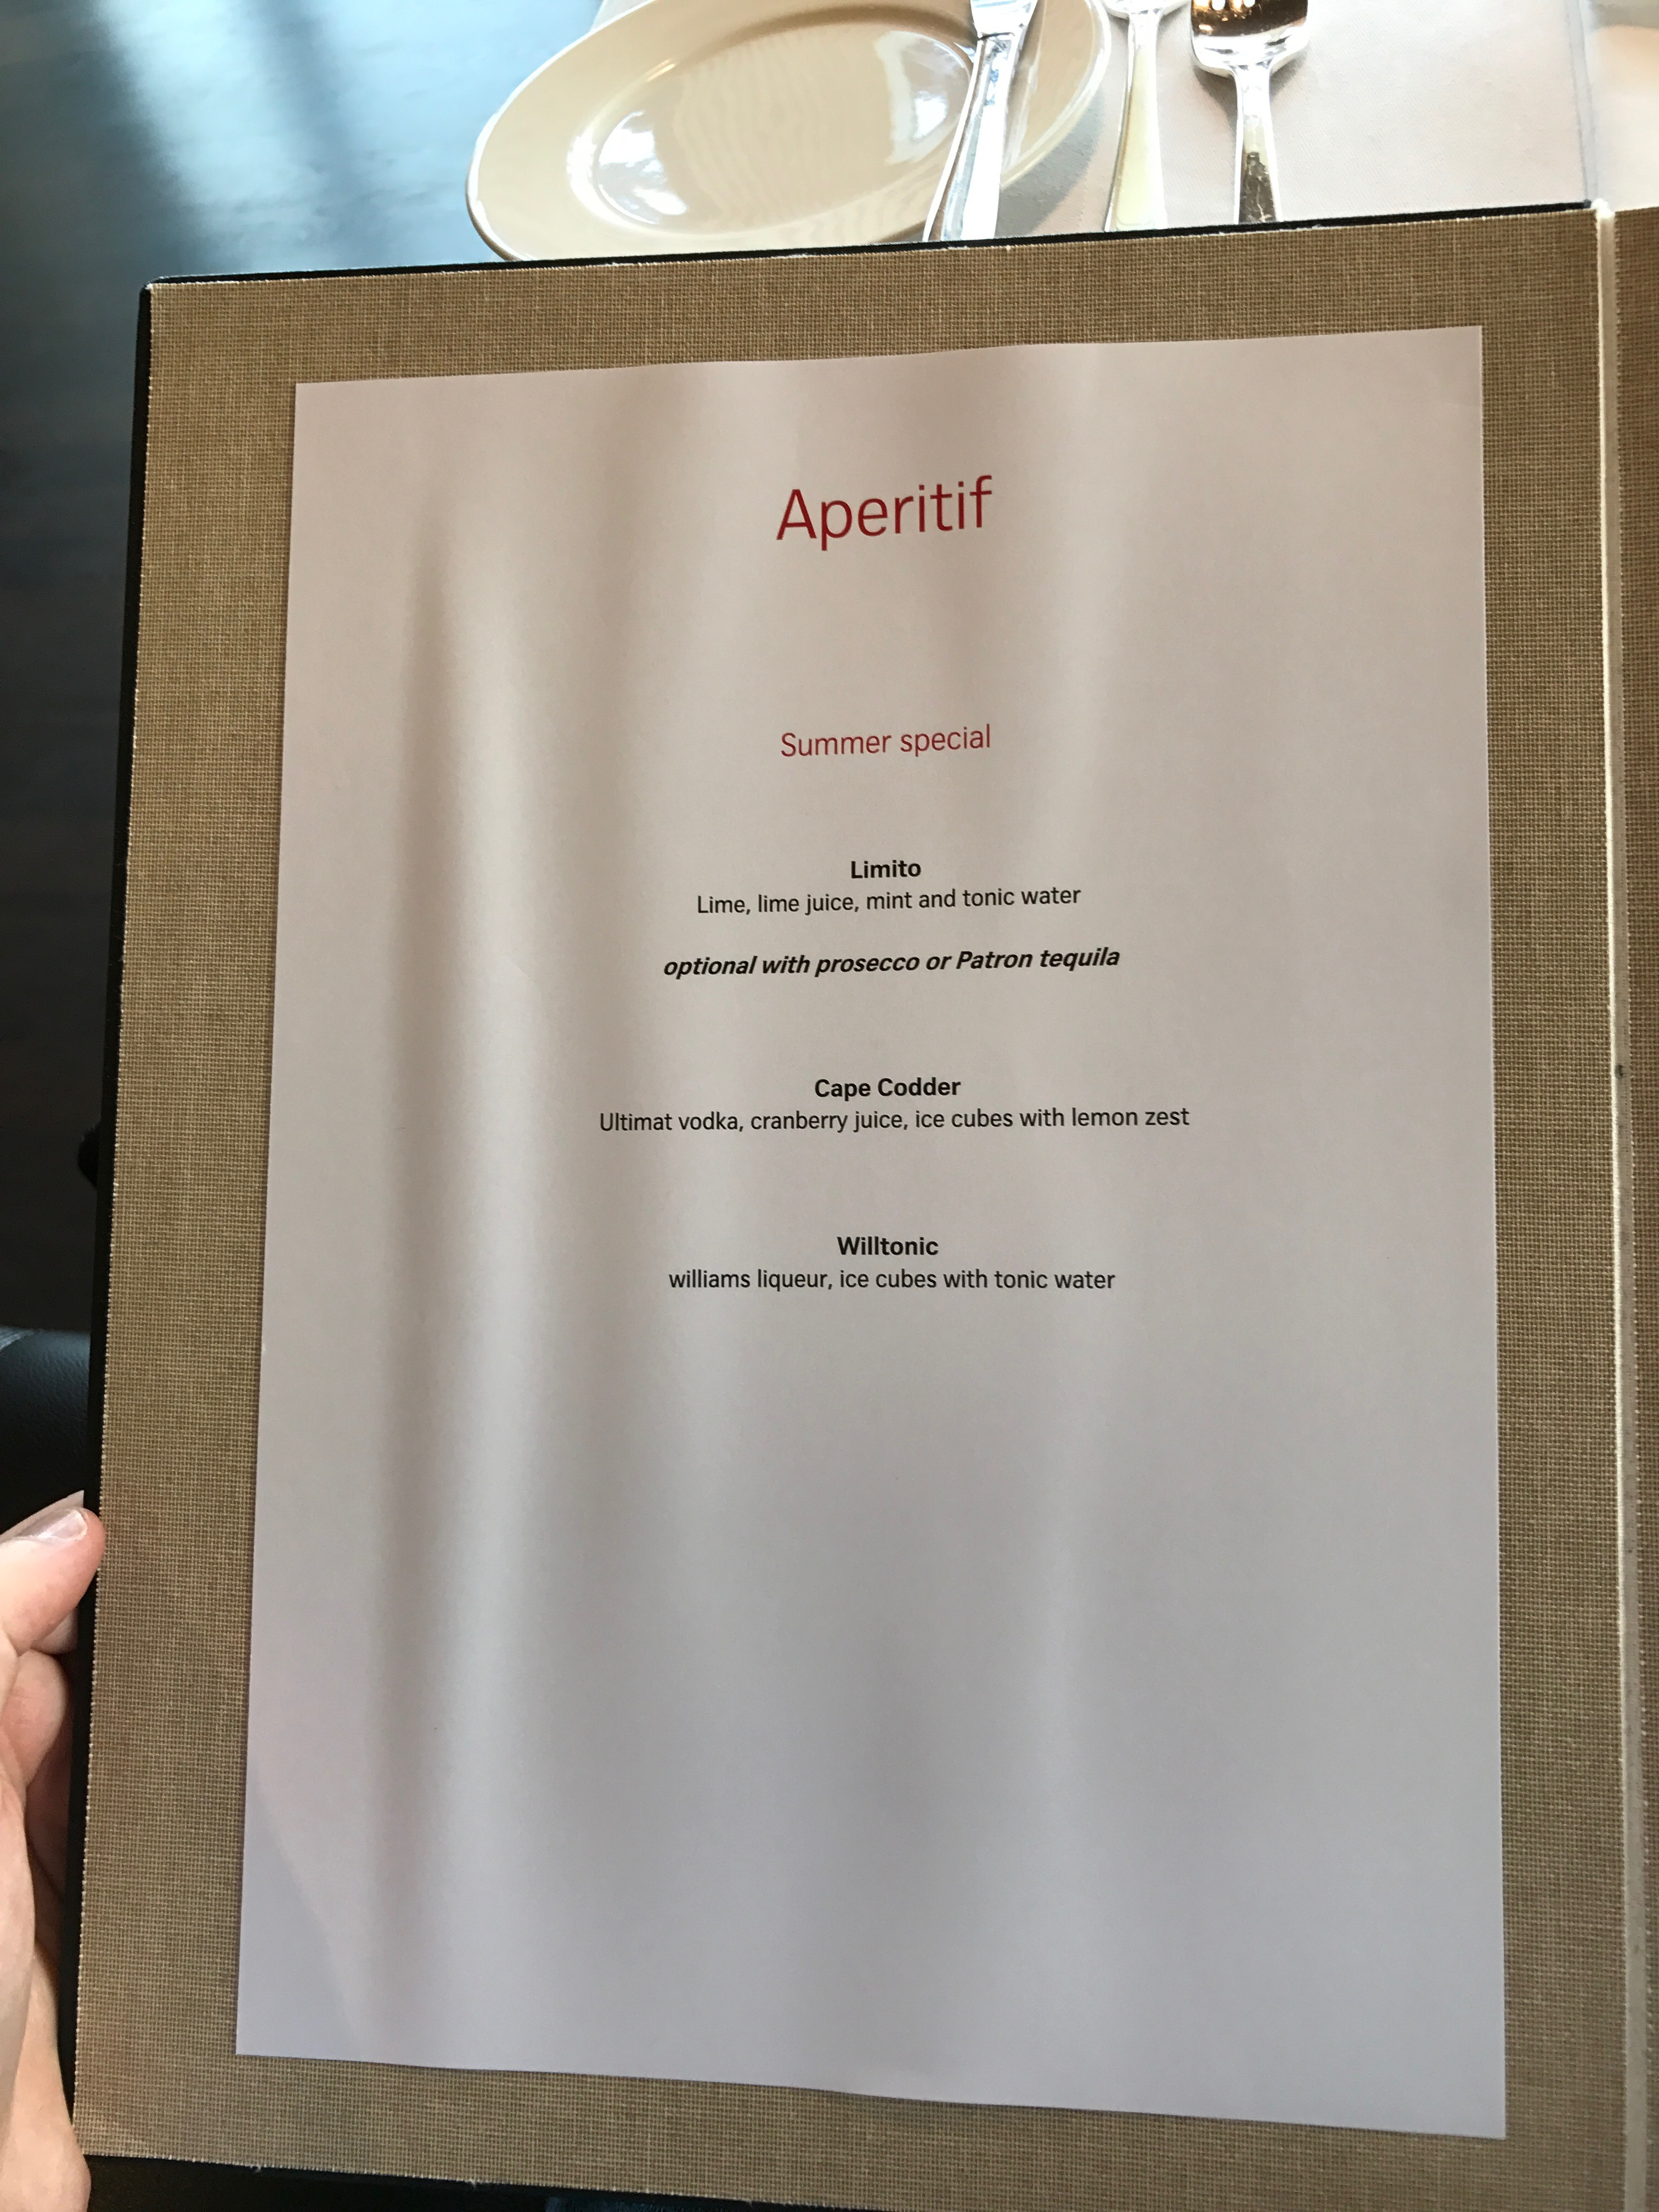 Swiss First Class Lounge at Zurich aperitif selection